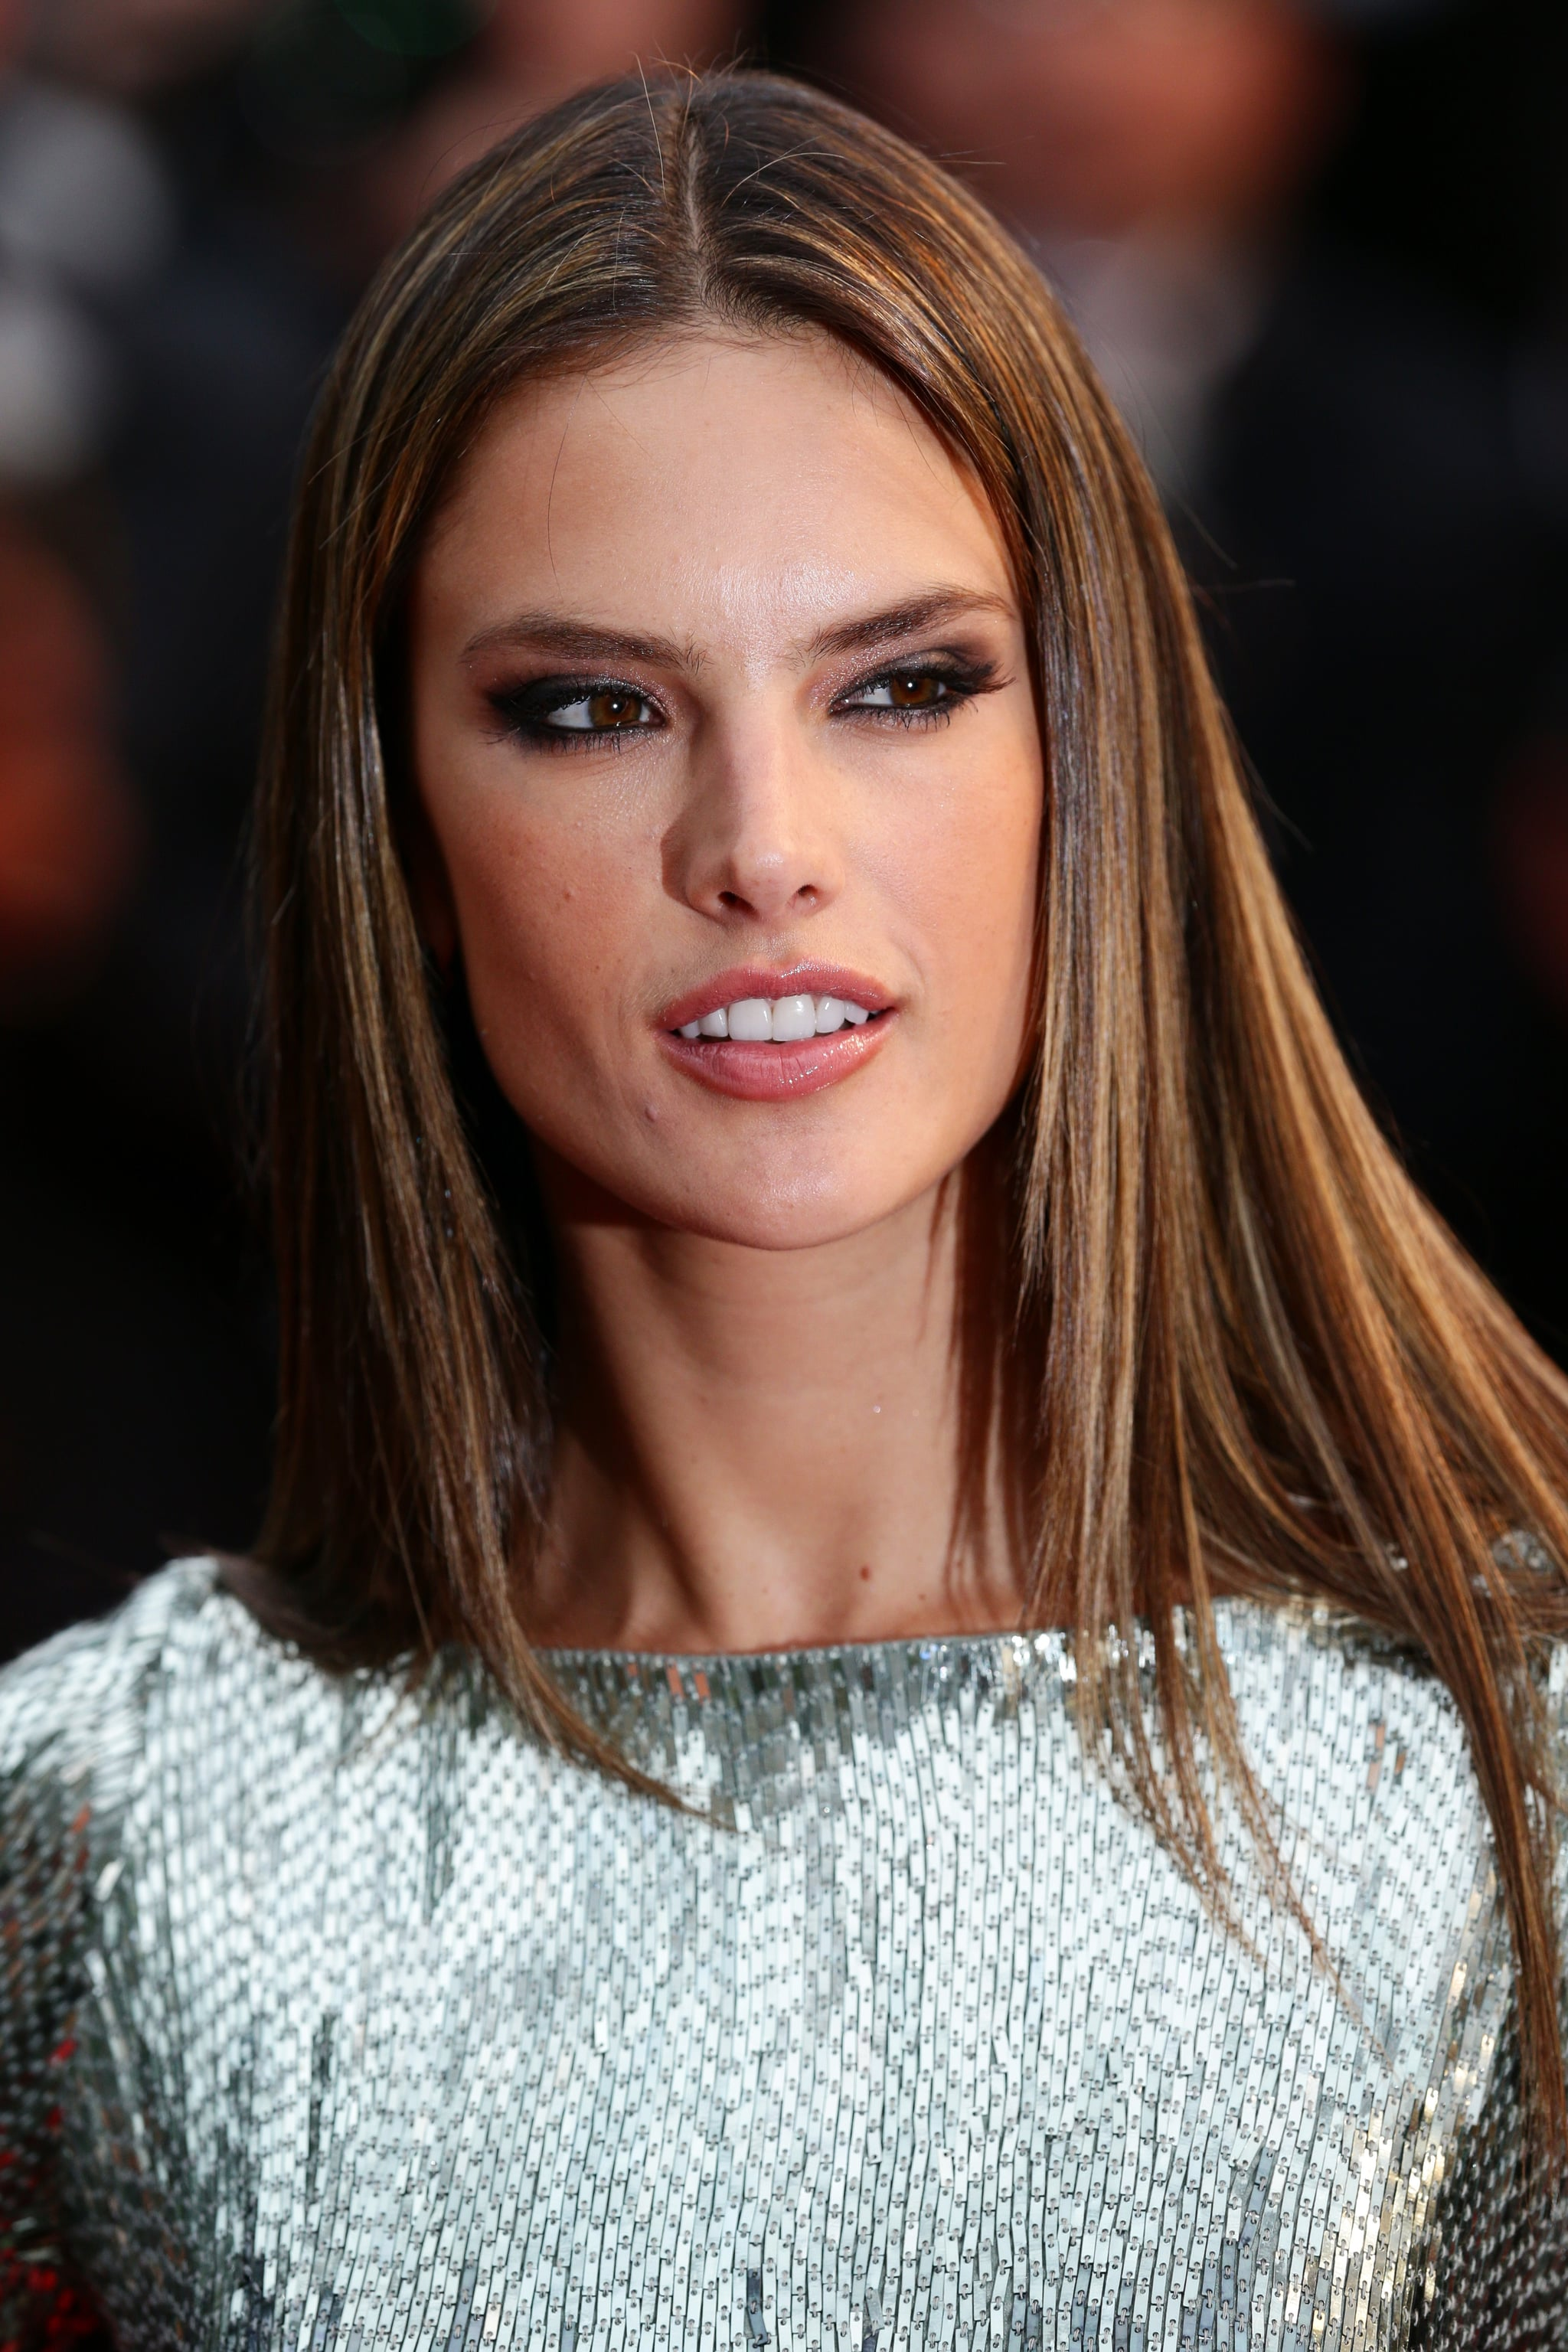 Alessandra Ambrosio styled her hair pin-straight for the All Is Lost | 100+  Glamorous Hair and Makeup Looks From the Cannes Red Carpet | POPSUGAR Beauty  Photo 24